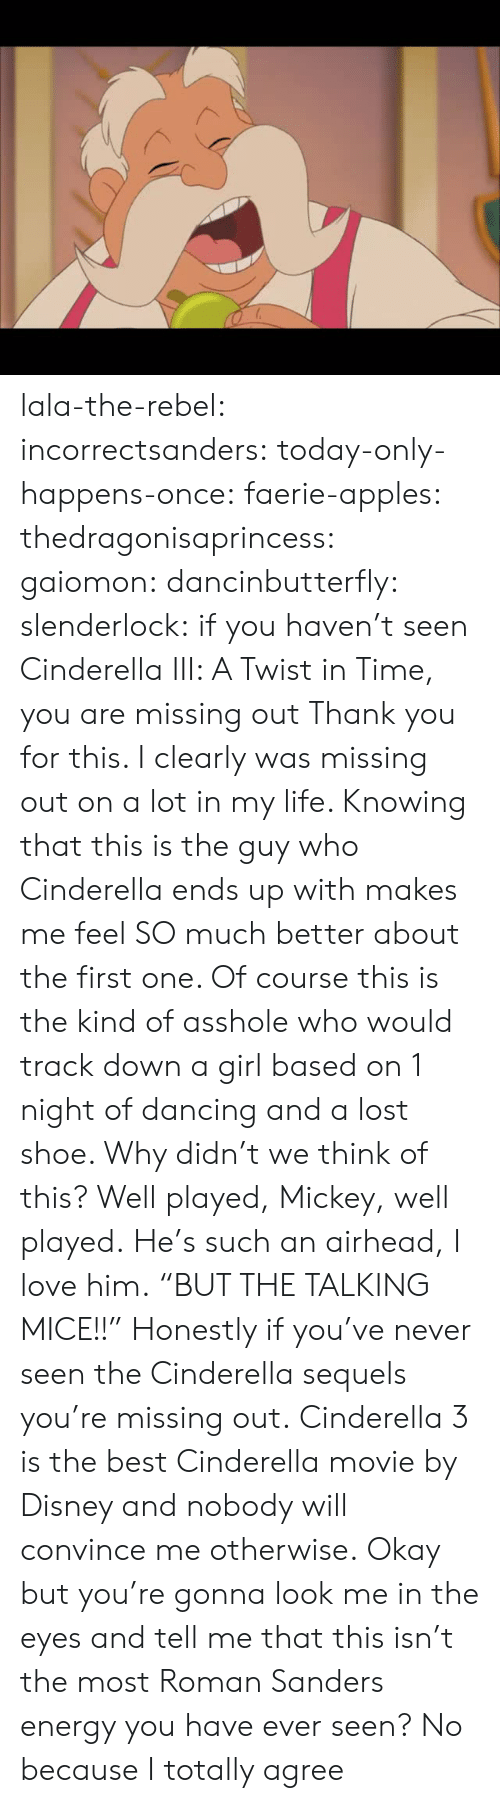 "Roman: lala-the-rebel:  incorrectsanders:   today-only-happens-once:   faerie-apples:  thedragonisaprincess:  gaiomon:  dancinbutterfly:  slenderlock: if you haven't seen Cinderella III: A Twist in Time, you are missing out Thank you for this. I clearly was missing out on a lot in my life. Knowing that this is the guy who Cinderella ends up with makes me feel SO much better about the first one. Of course this is the kind of asshole who would track down a girl based on 1 night of dancing and a lost shoe. Why didn't we think of this? Well played, Mickey, well played.  He's such an airhead, I love him.  ""BUT THE TALKING MICE!!""  Honestly if you've never seen the Cinderella sequels you're missing out.  Cinderella 3 is the best Cinderella movie by Disney and nobody will convince me otherwise.   Okay but you're gonna look me in the eyes and tell me that this isn't the most Roman Sanders energy you have ever seen?    No because I totally agree"